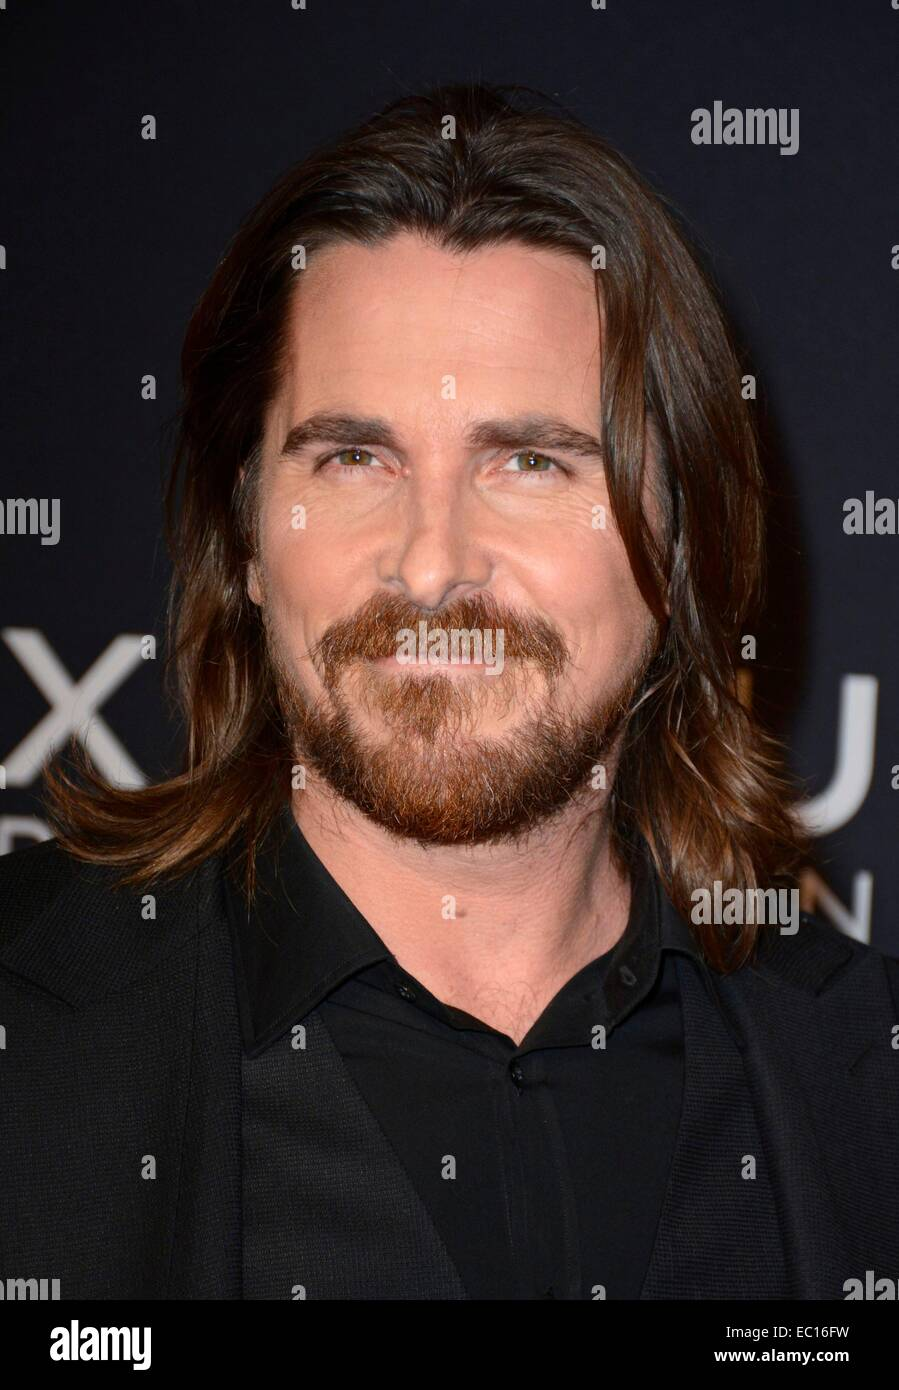 Brooklyn, NY, USA. 7th Dec, 2014. Christian Bale at arrivals for EXODUS: GODS AND KINGS Premiere, The Brooklyn Museum, - Stock Image